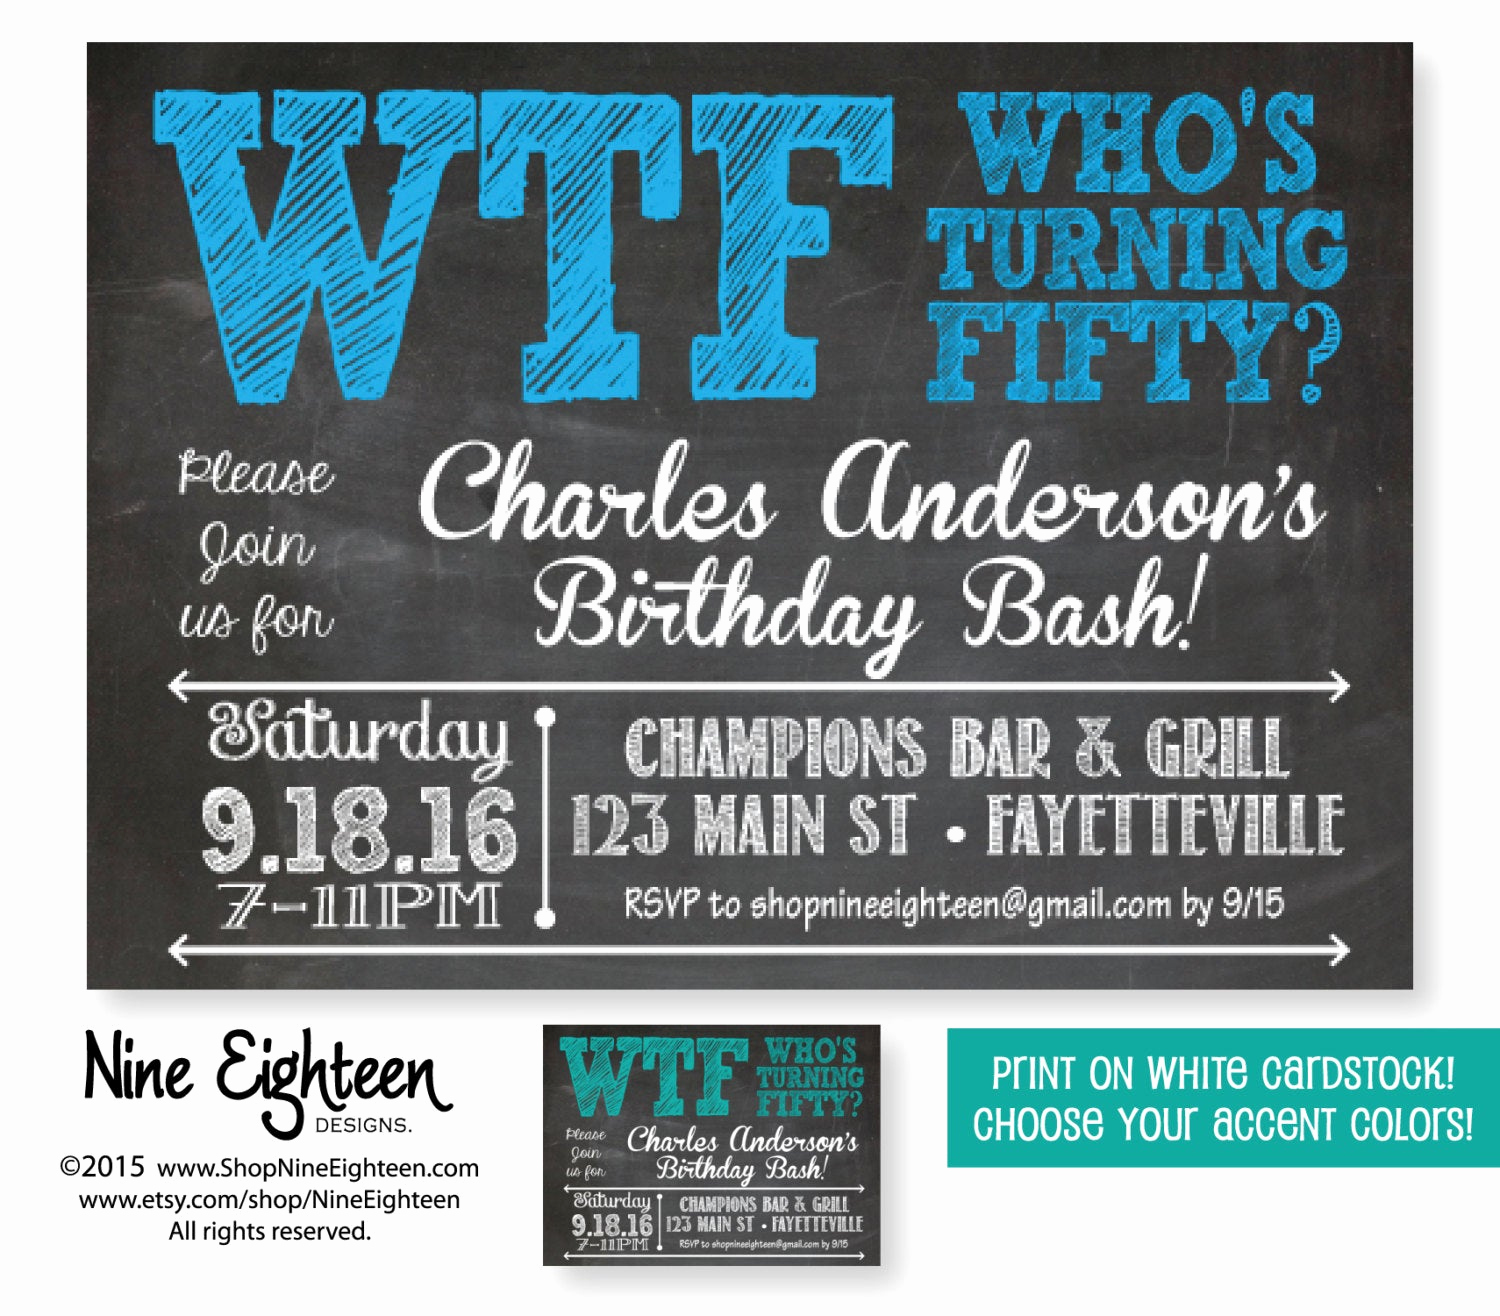 50th Anniversary Invitation Ideas Fresh 50th Birthday Party Invitation Wtf who S Turning by